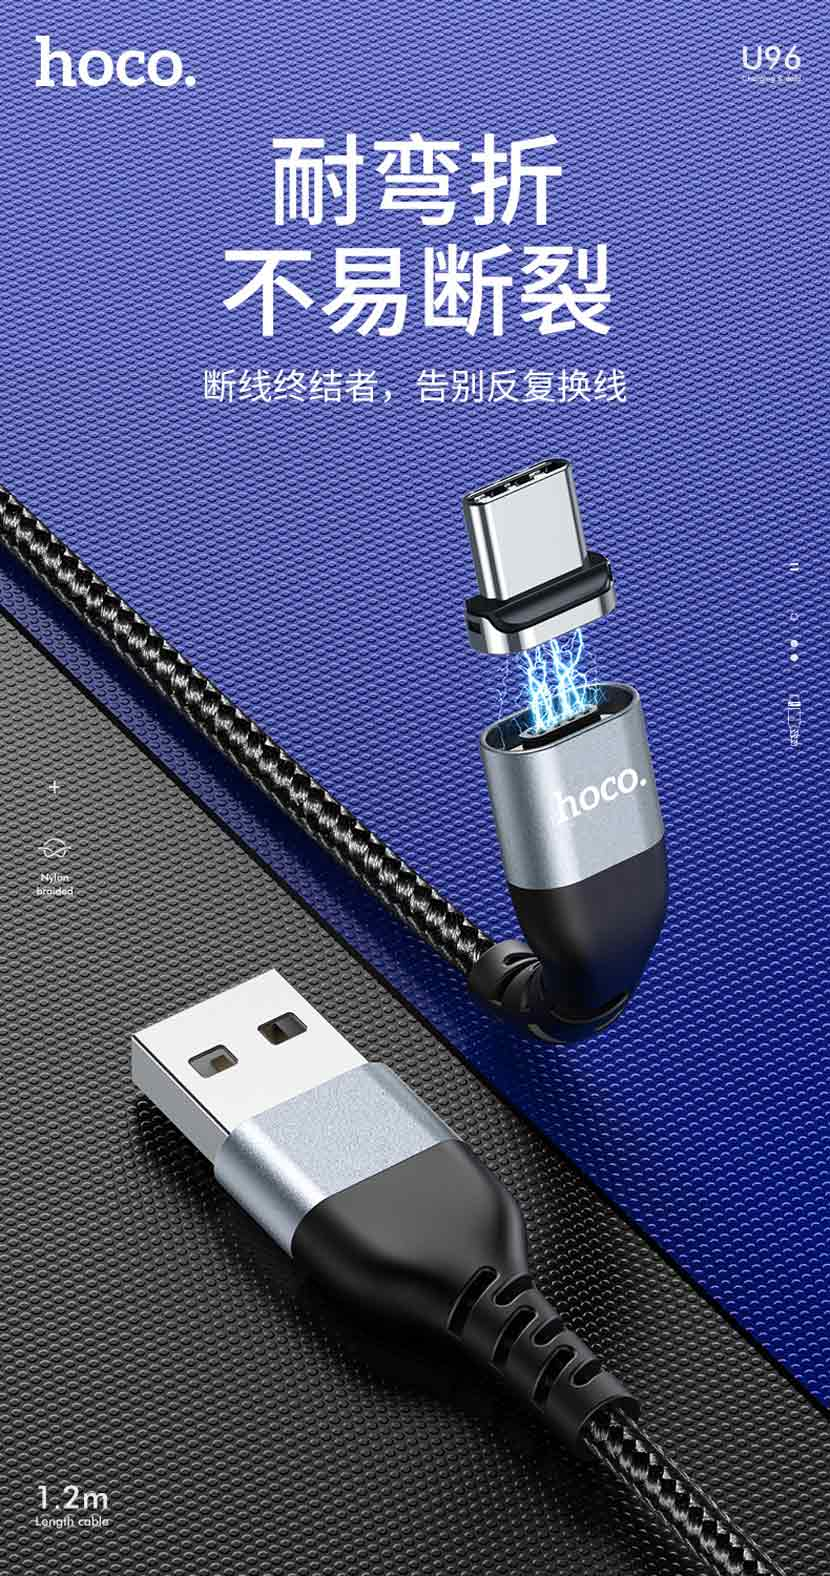 hoco news u96 traveller magnetic charging data cable bending resistant cn